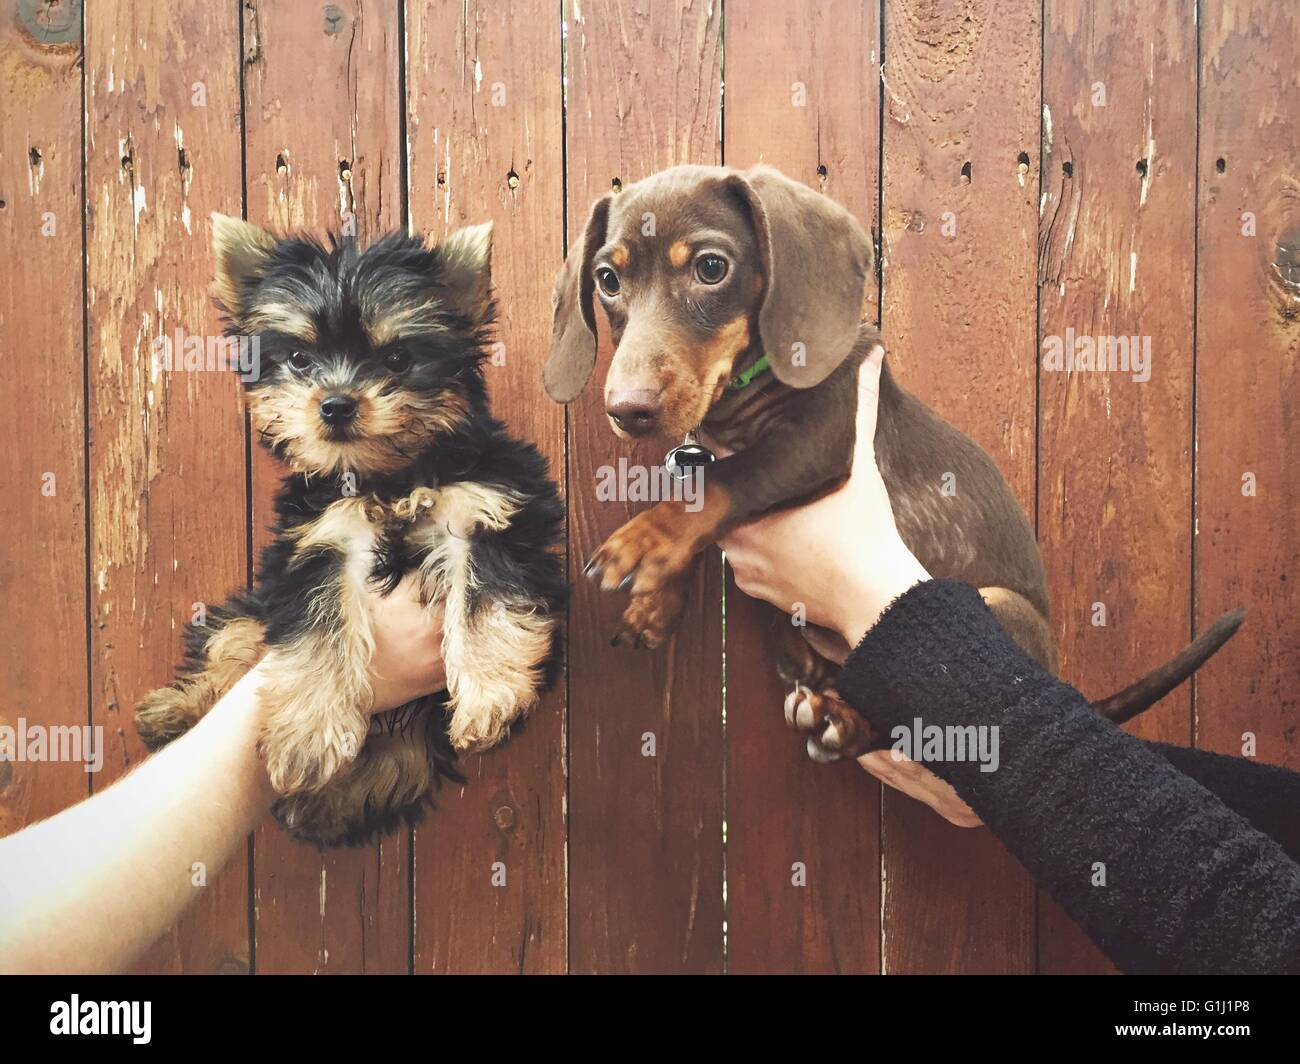 Les mains tenant deux chiots Photo Stock